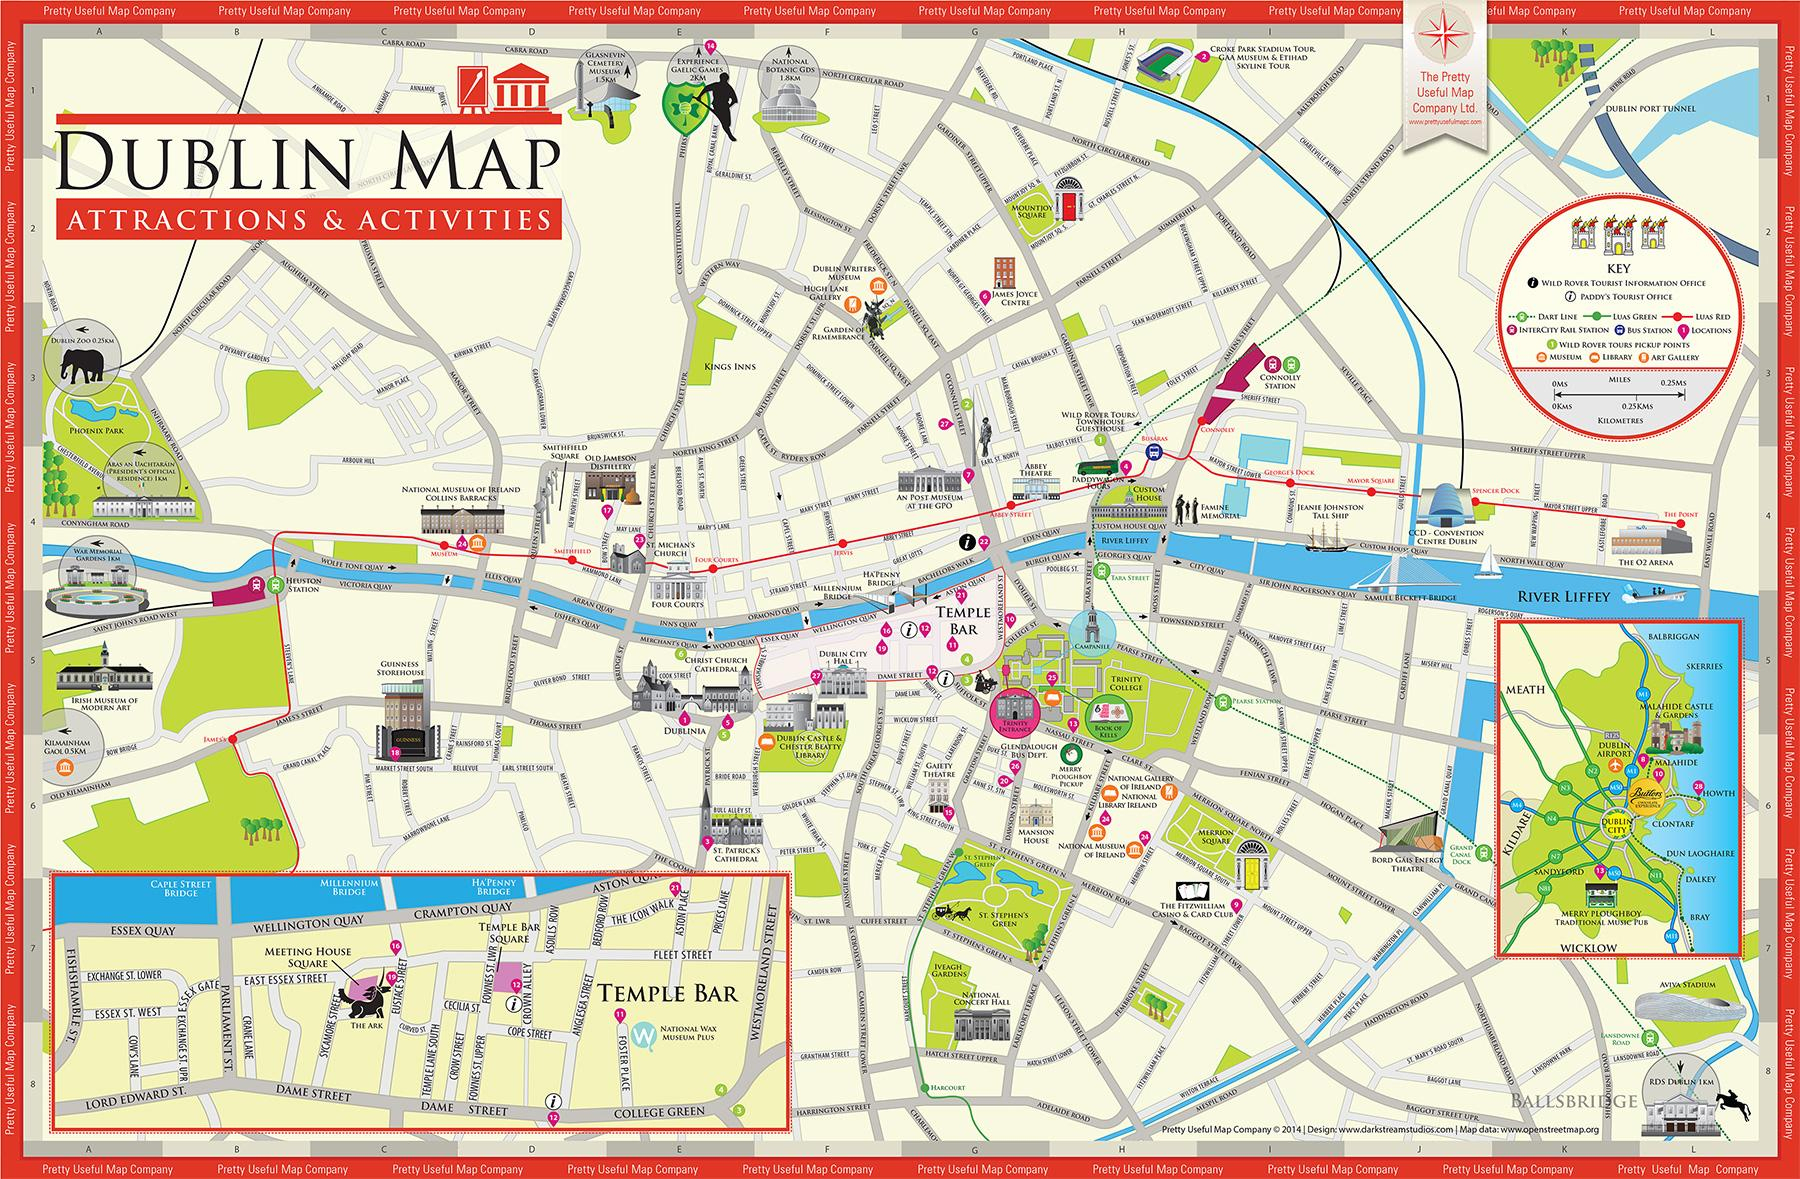 Tourist Map Dublin - Map Of Dublin Tourist Attractions (Ireland) - Dublin Tourist Map Printable